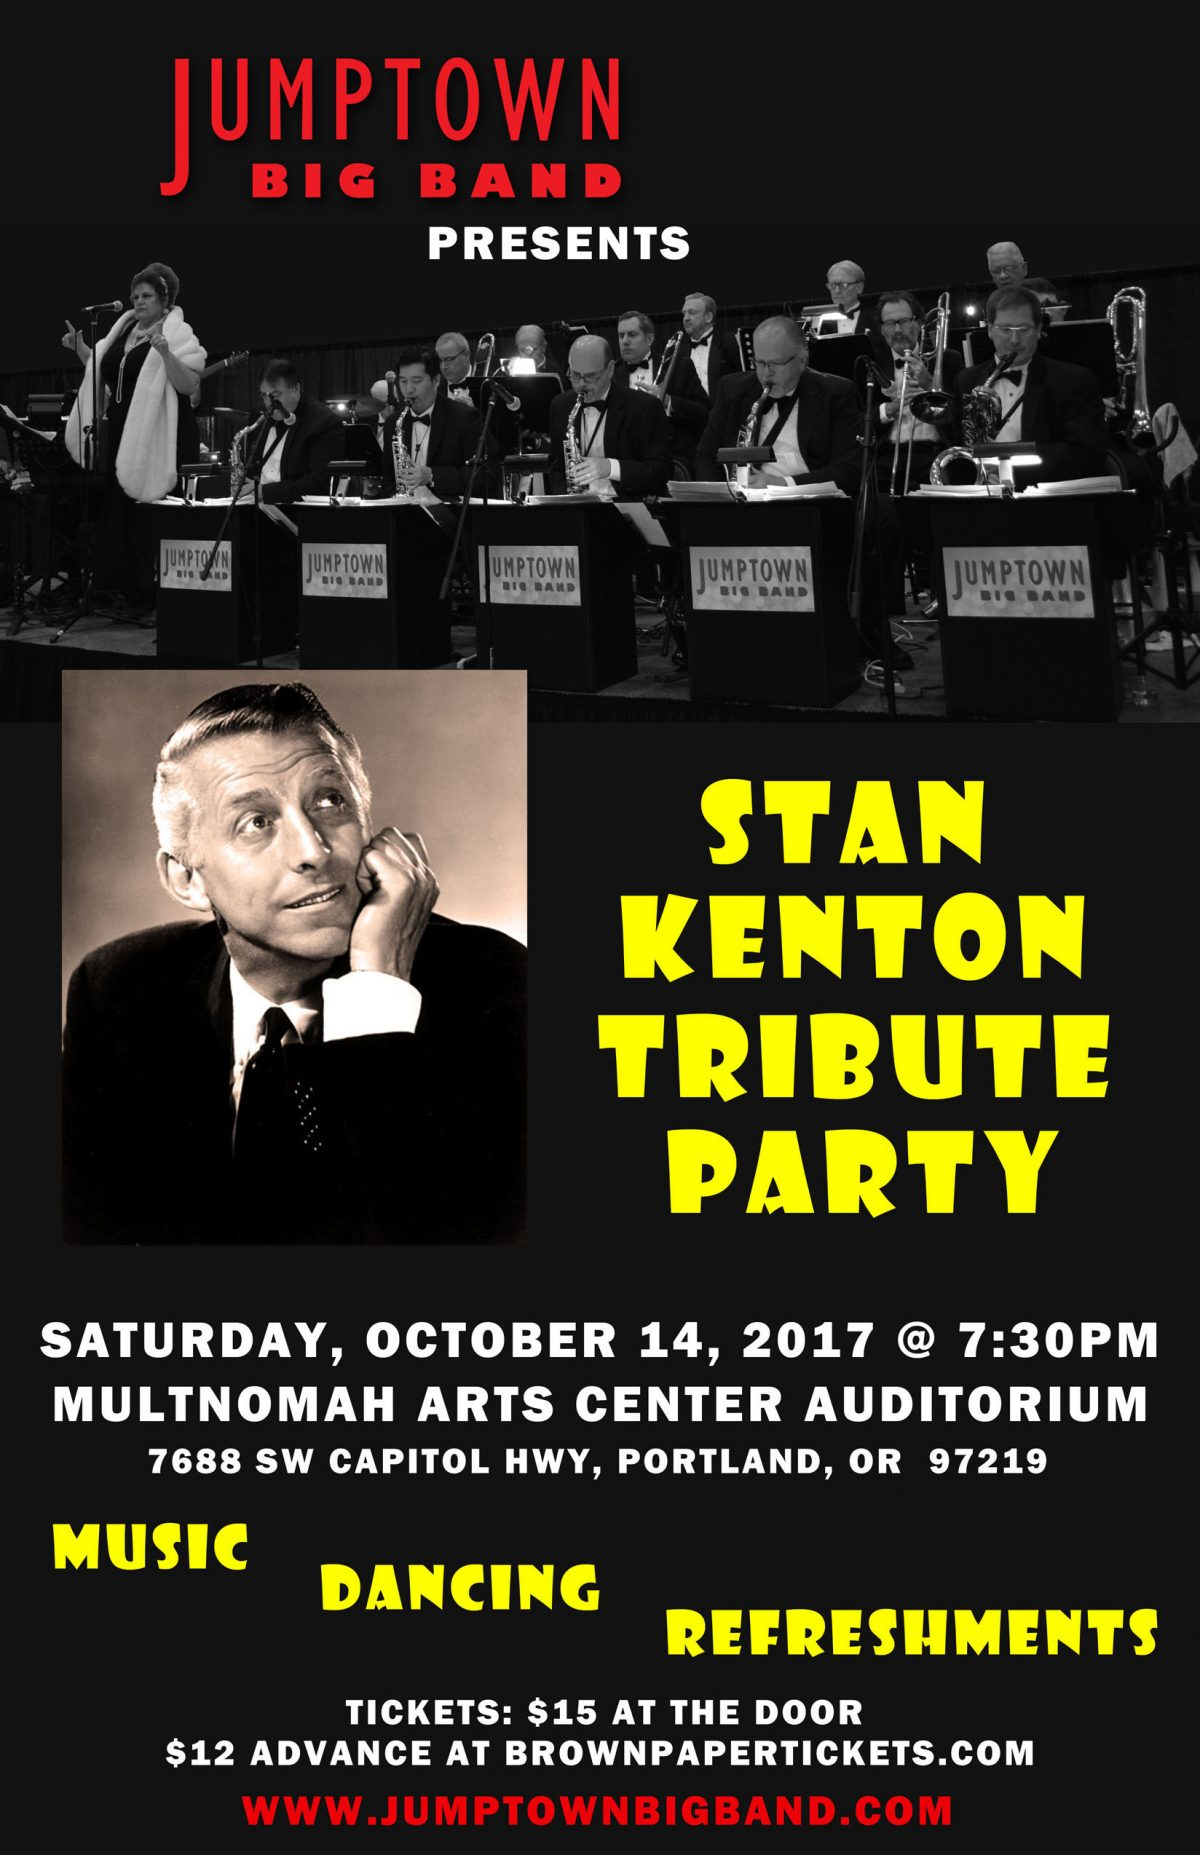 October 14, 2017 – Stan Kenton Tribute Party